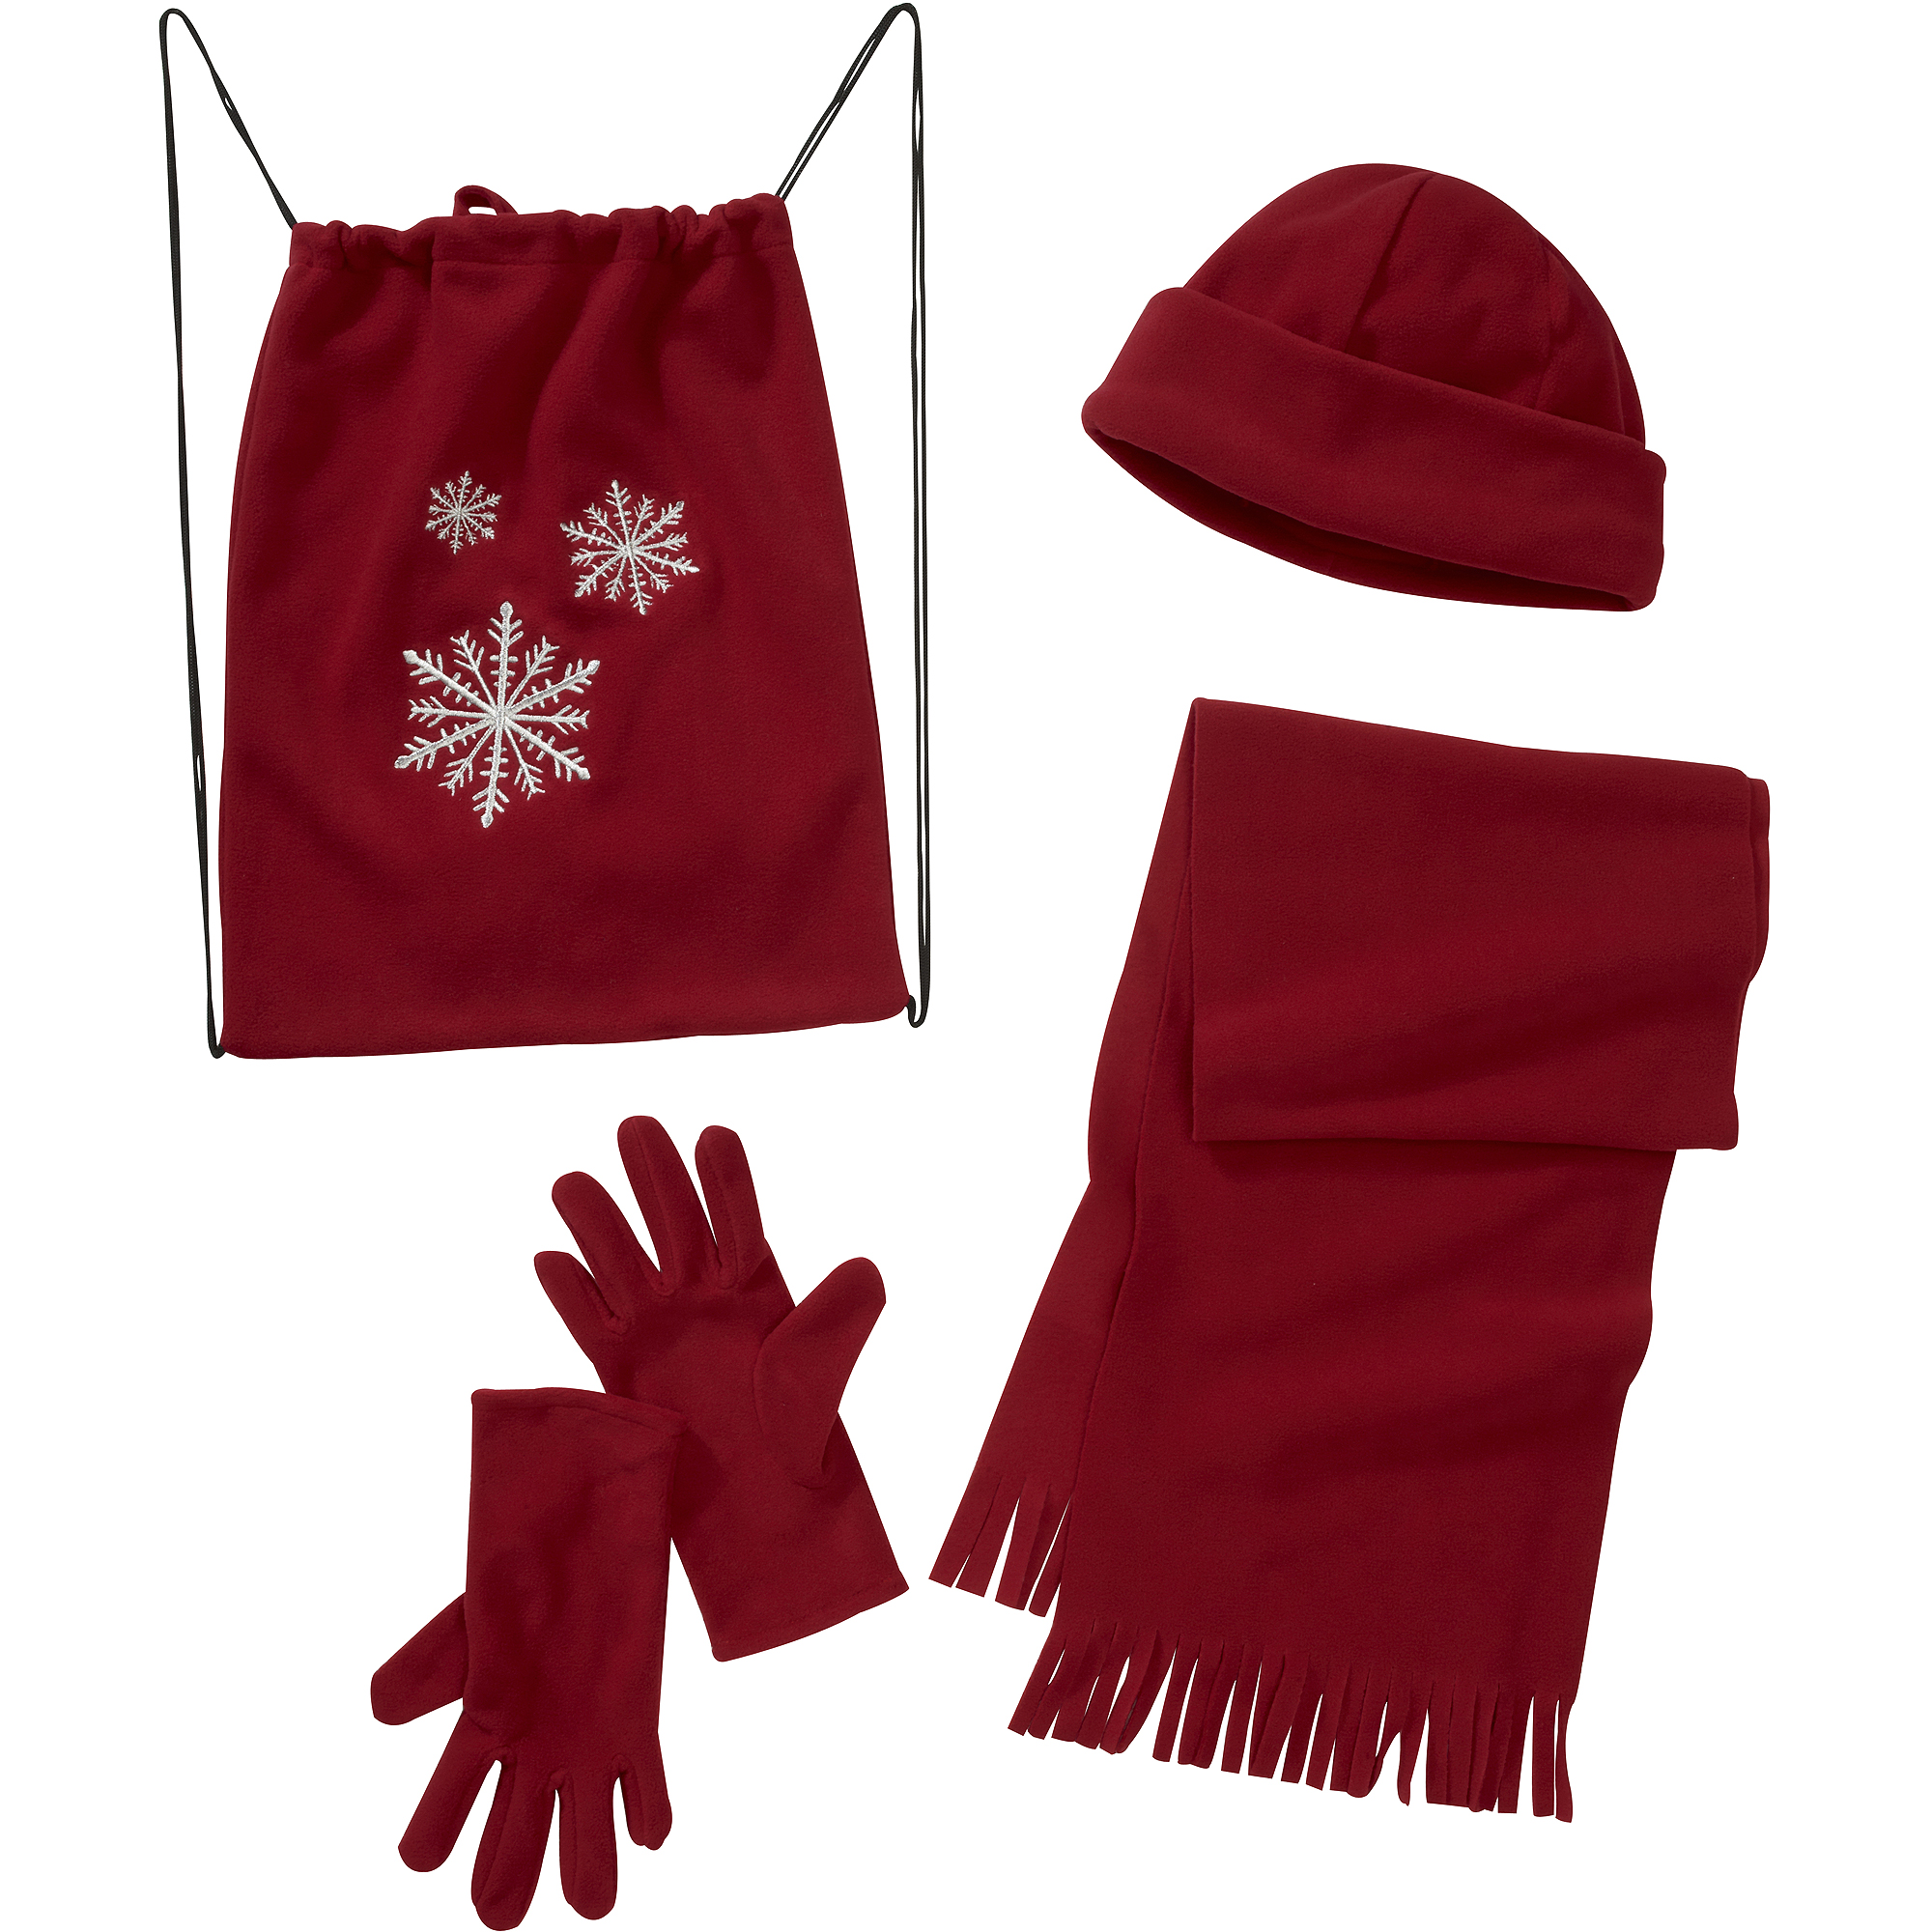 Women's 4-Piece Bag, Hat, Scarf and Gloves Fleece Gift Set